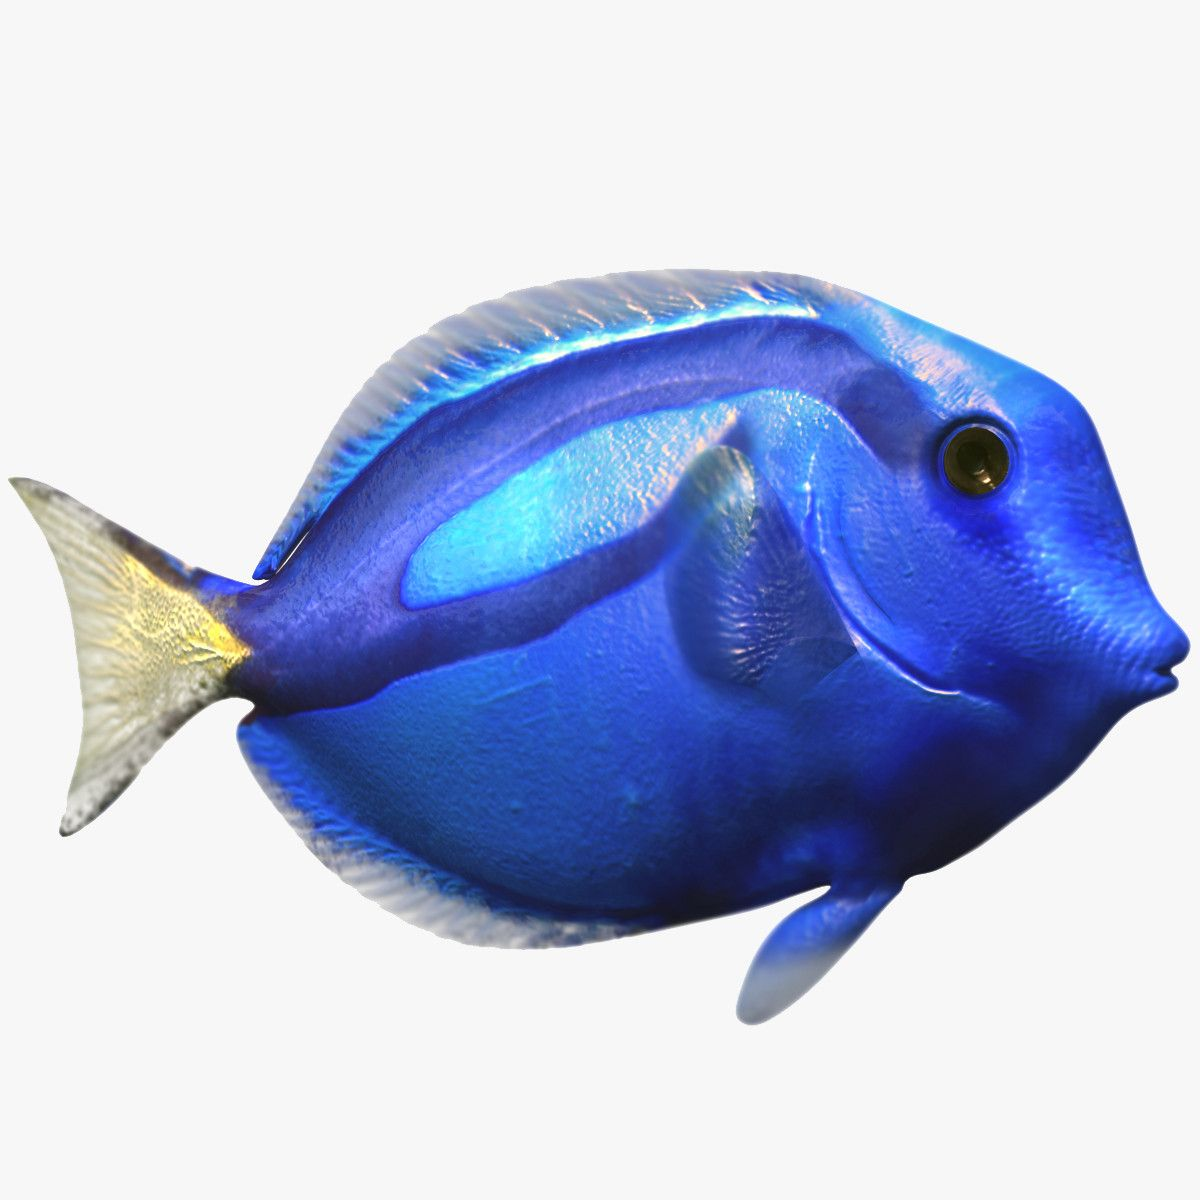 Max blue surgeon tropical fish pinterest tropical max blue surgeon tropical fish jeuxipadfo Images